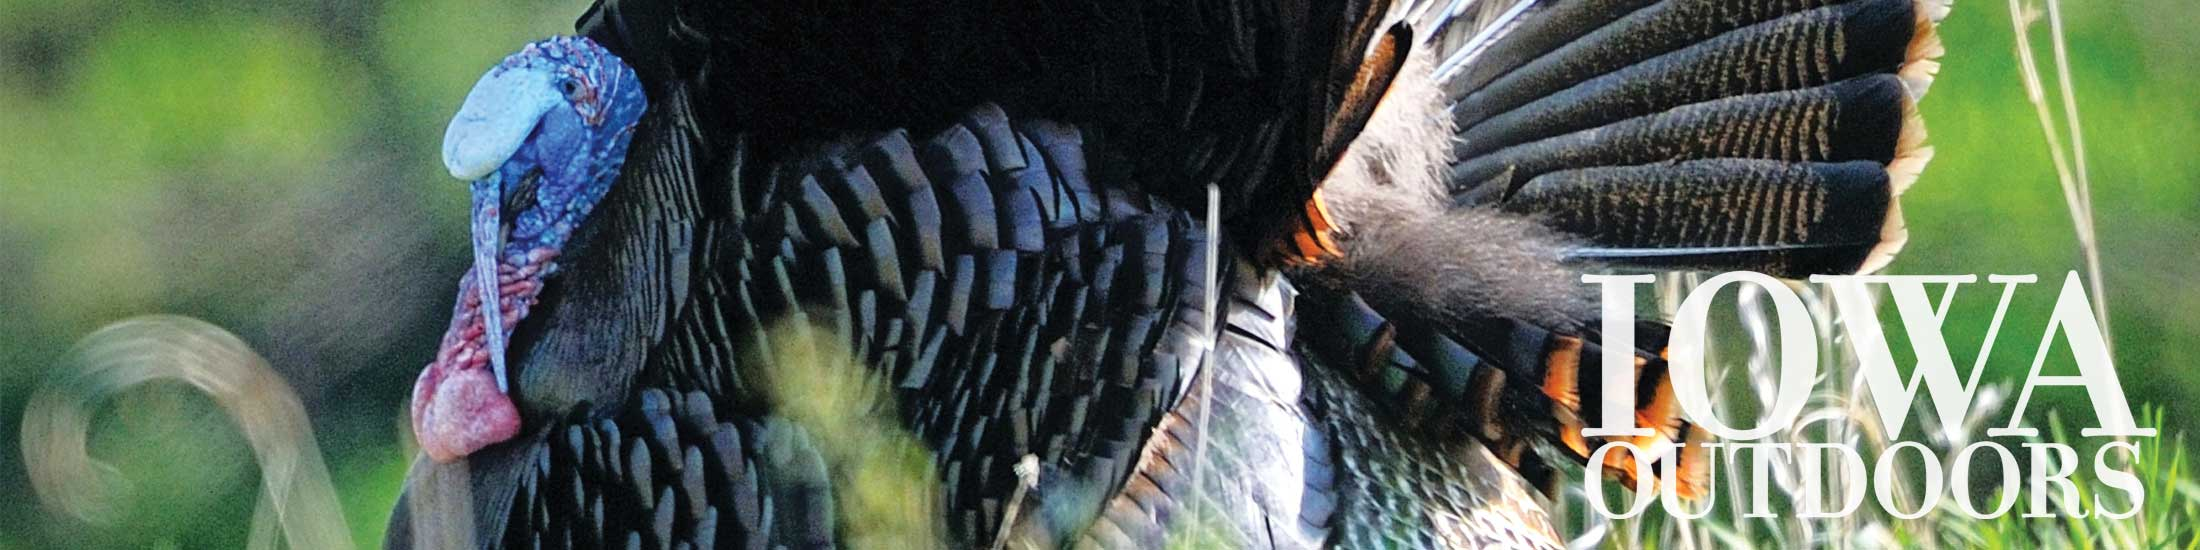 turkey Iowa Outdoors magazine